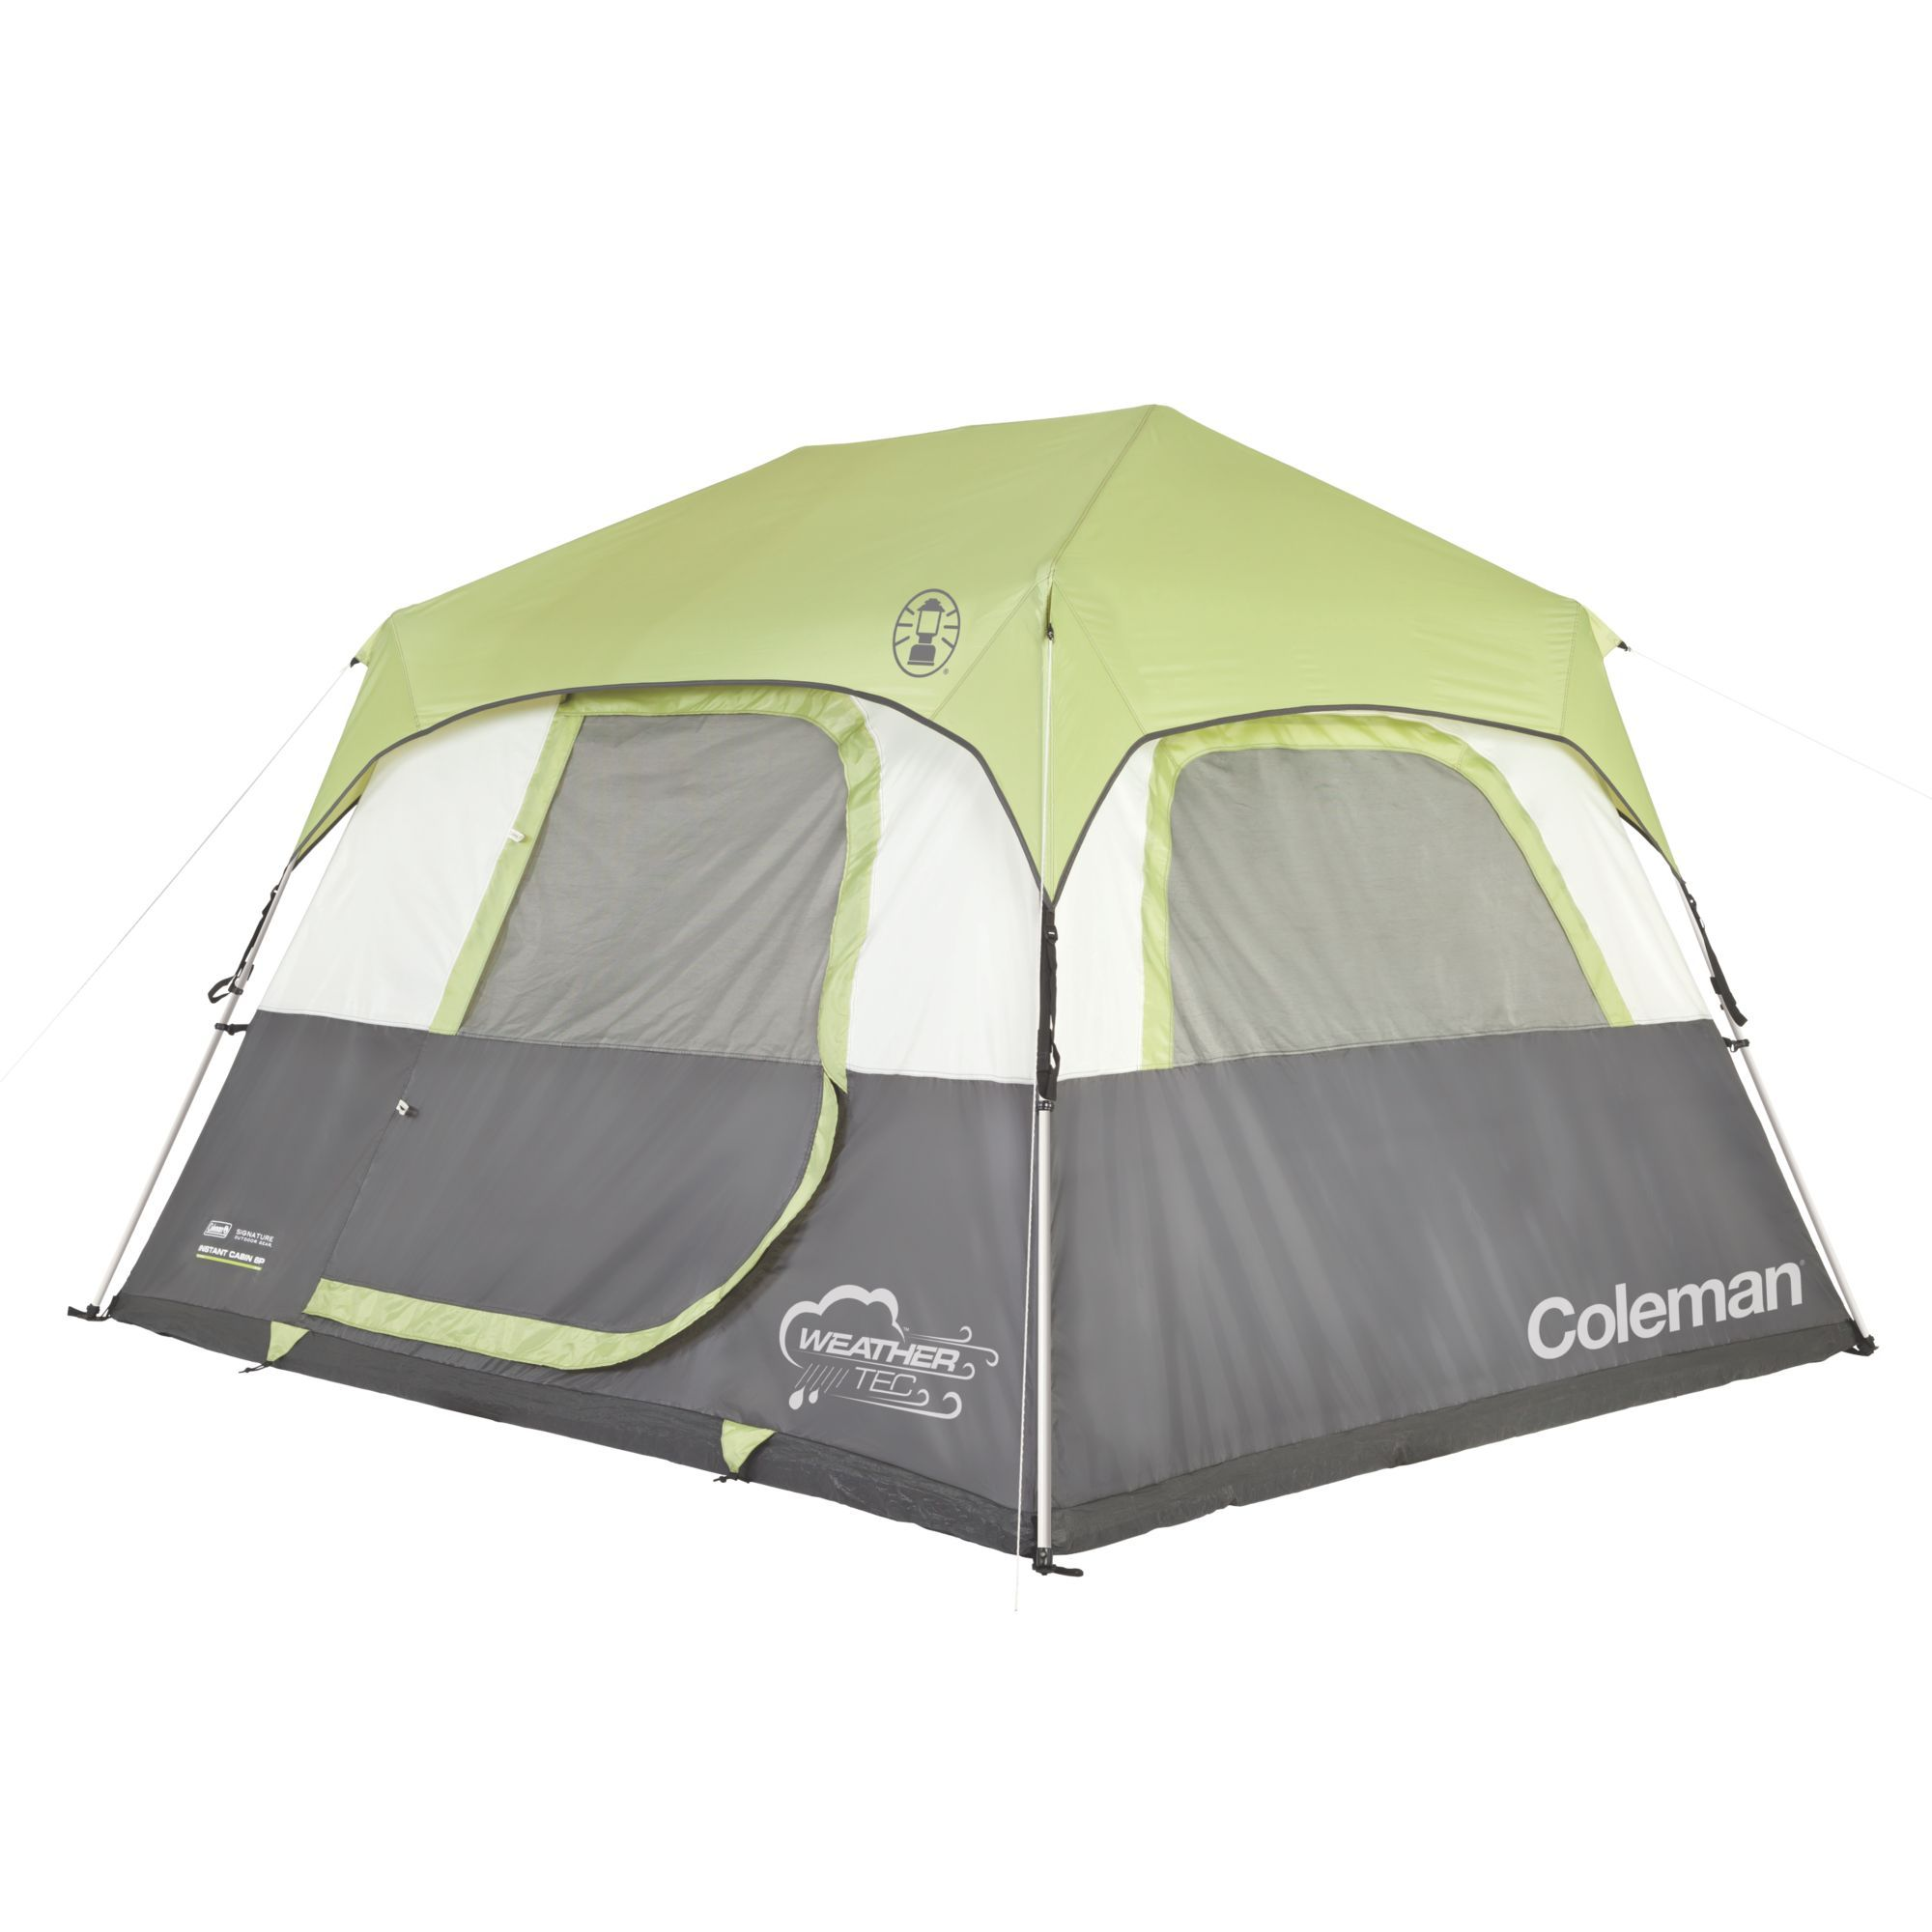 When looking for a Coleman tent try our Coleman instant tent selection for the greatest  sc 1 st  Pinterest & When looking for a Coleman tent try our Coleman instant tent ...